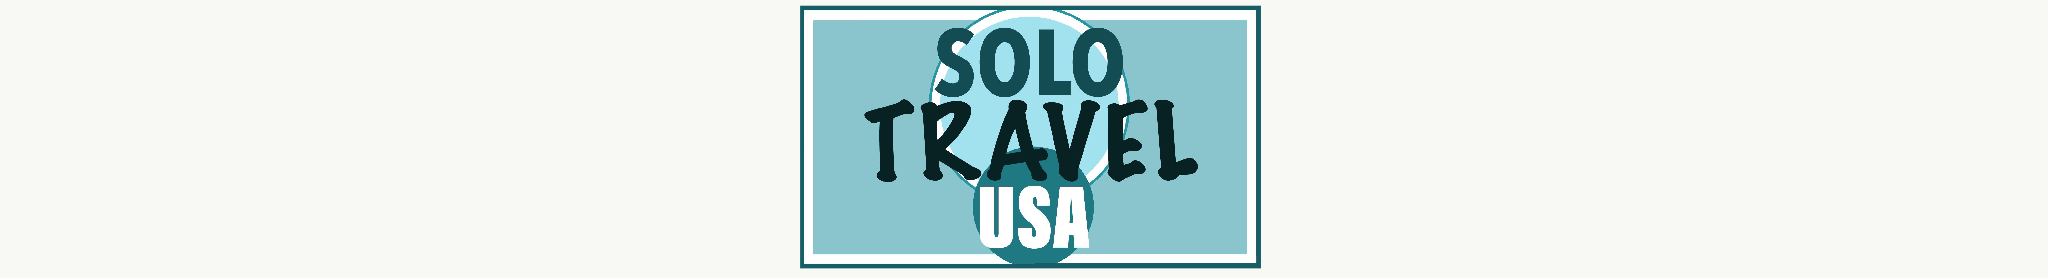 Solo Travel USA